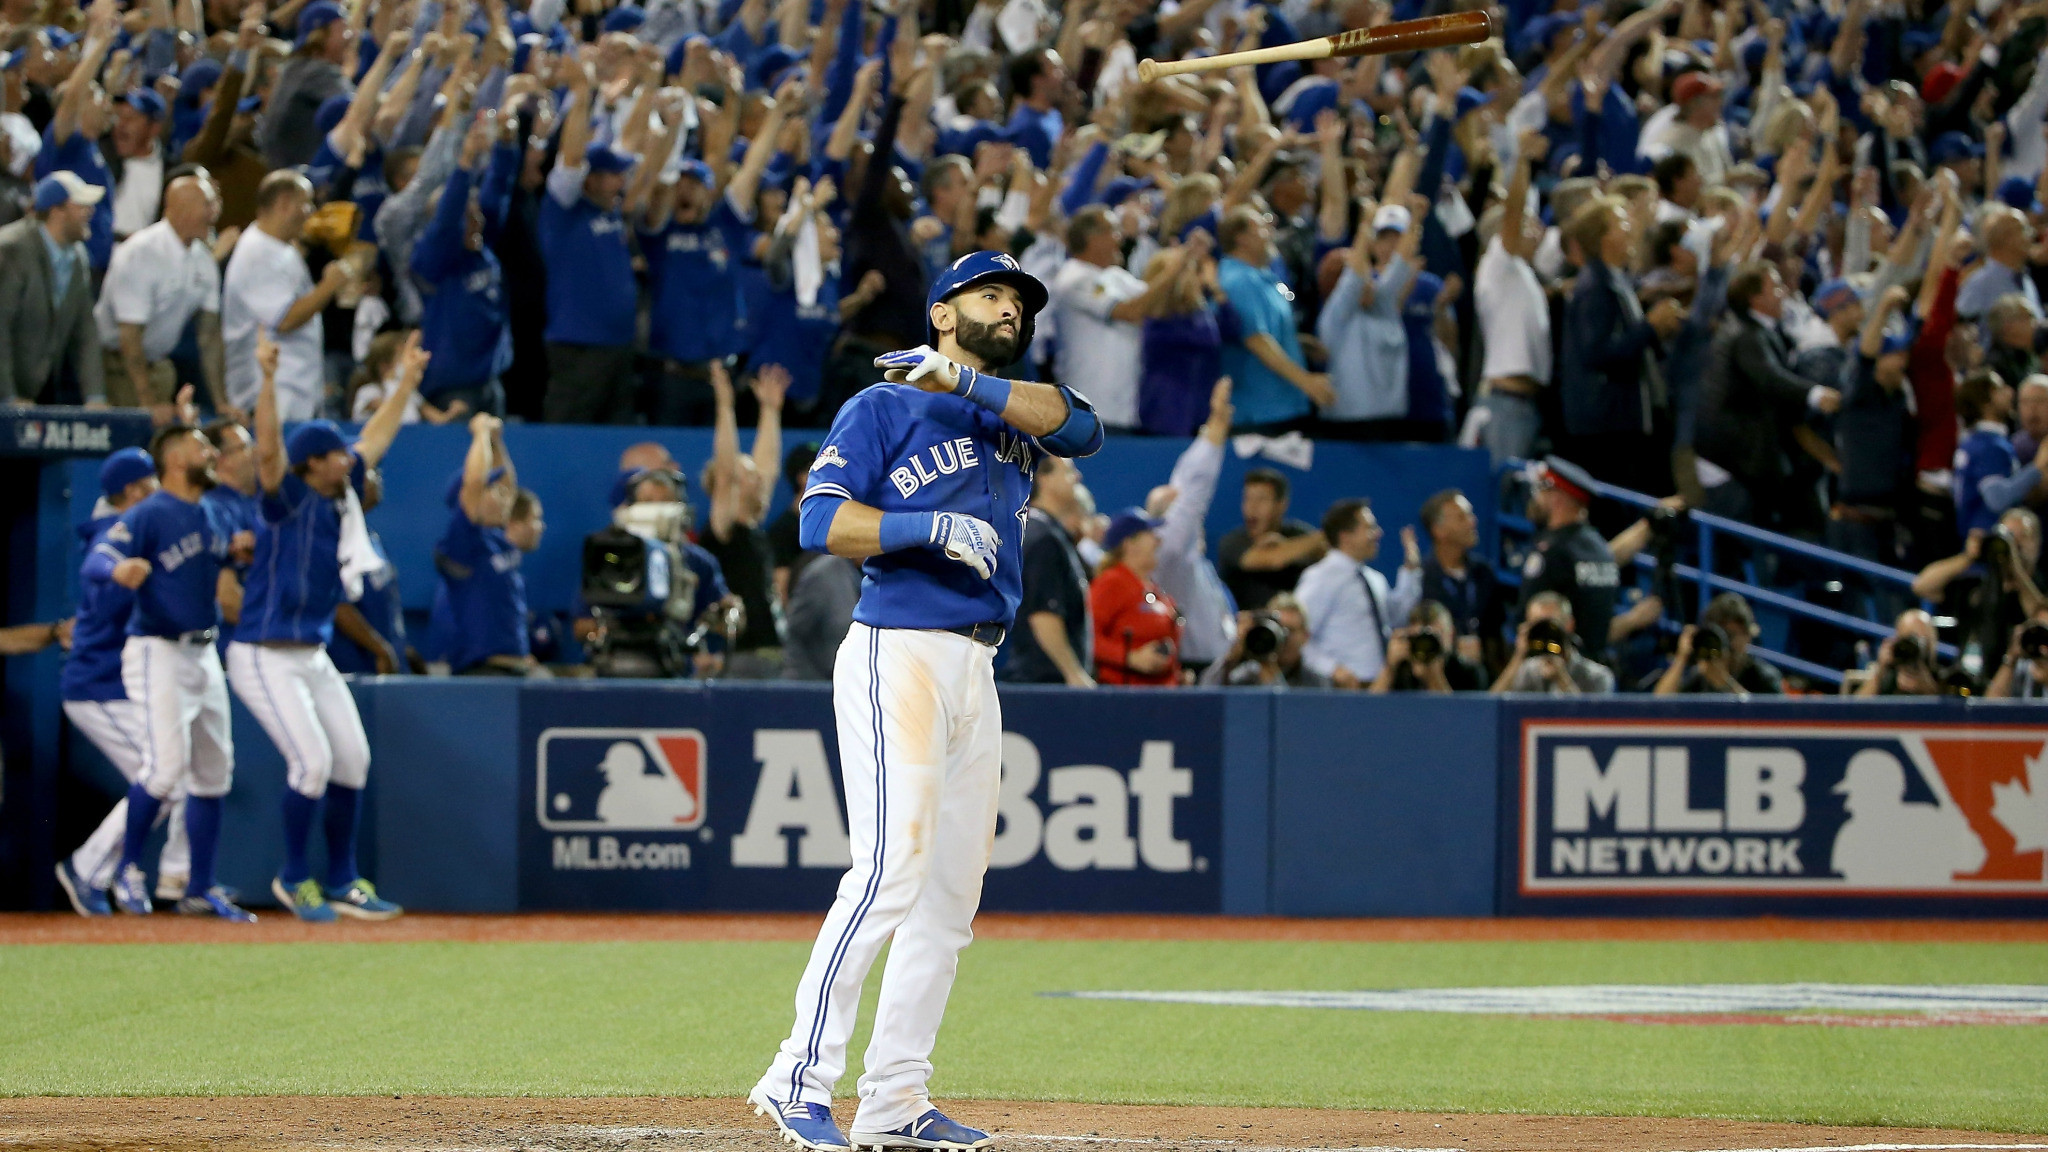 Throw Down: The Blue Jays Toss the Rangers Thanks to One of the Craziest  Innings in MLB Playoff History